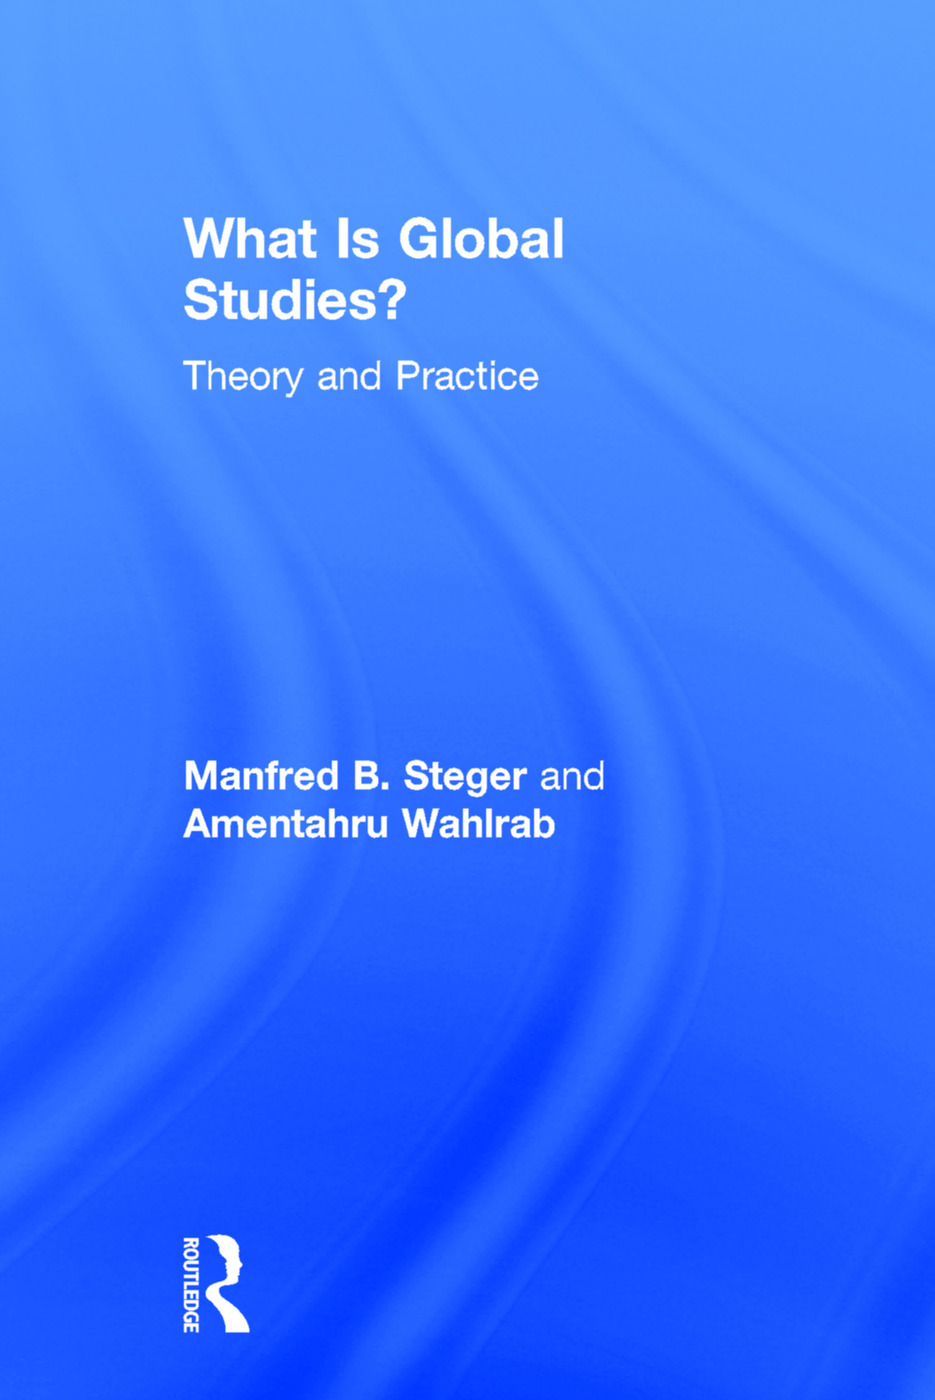 The Intellectual Origins and Evolution of Global Studies